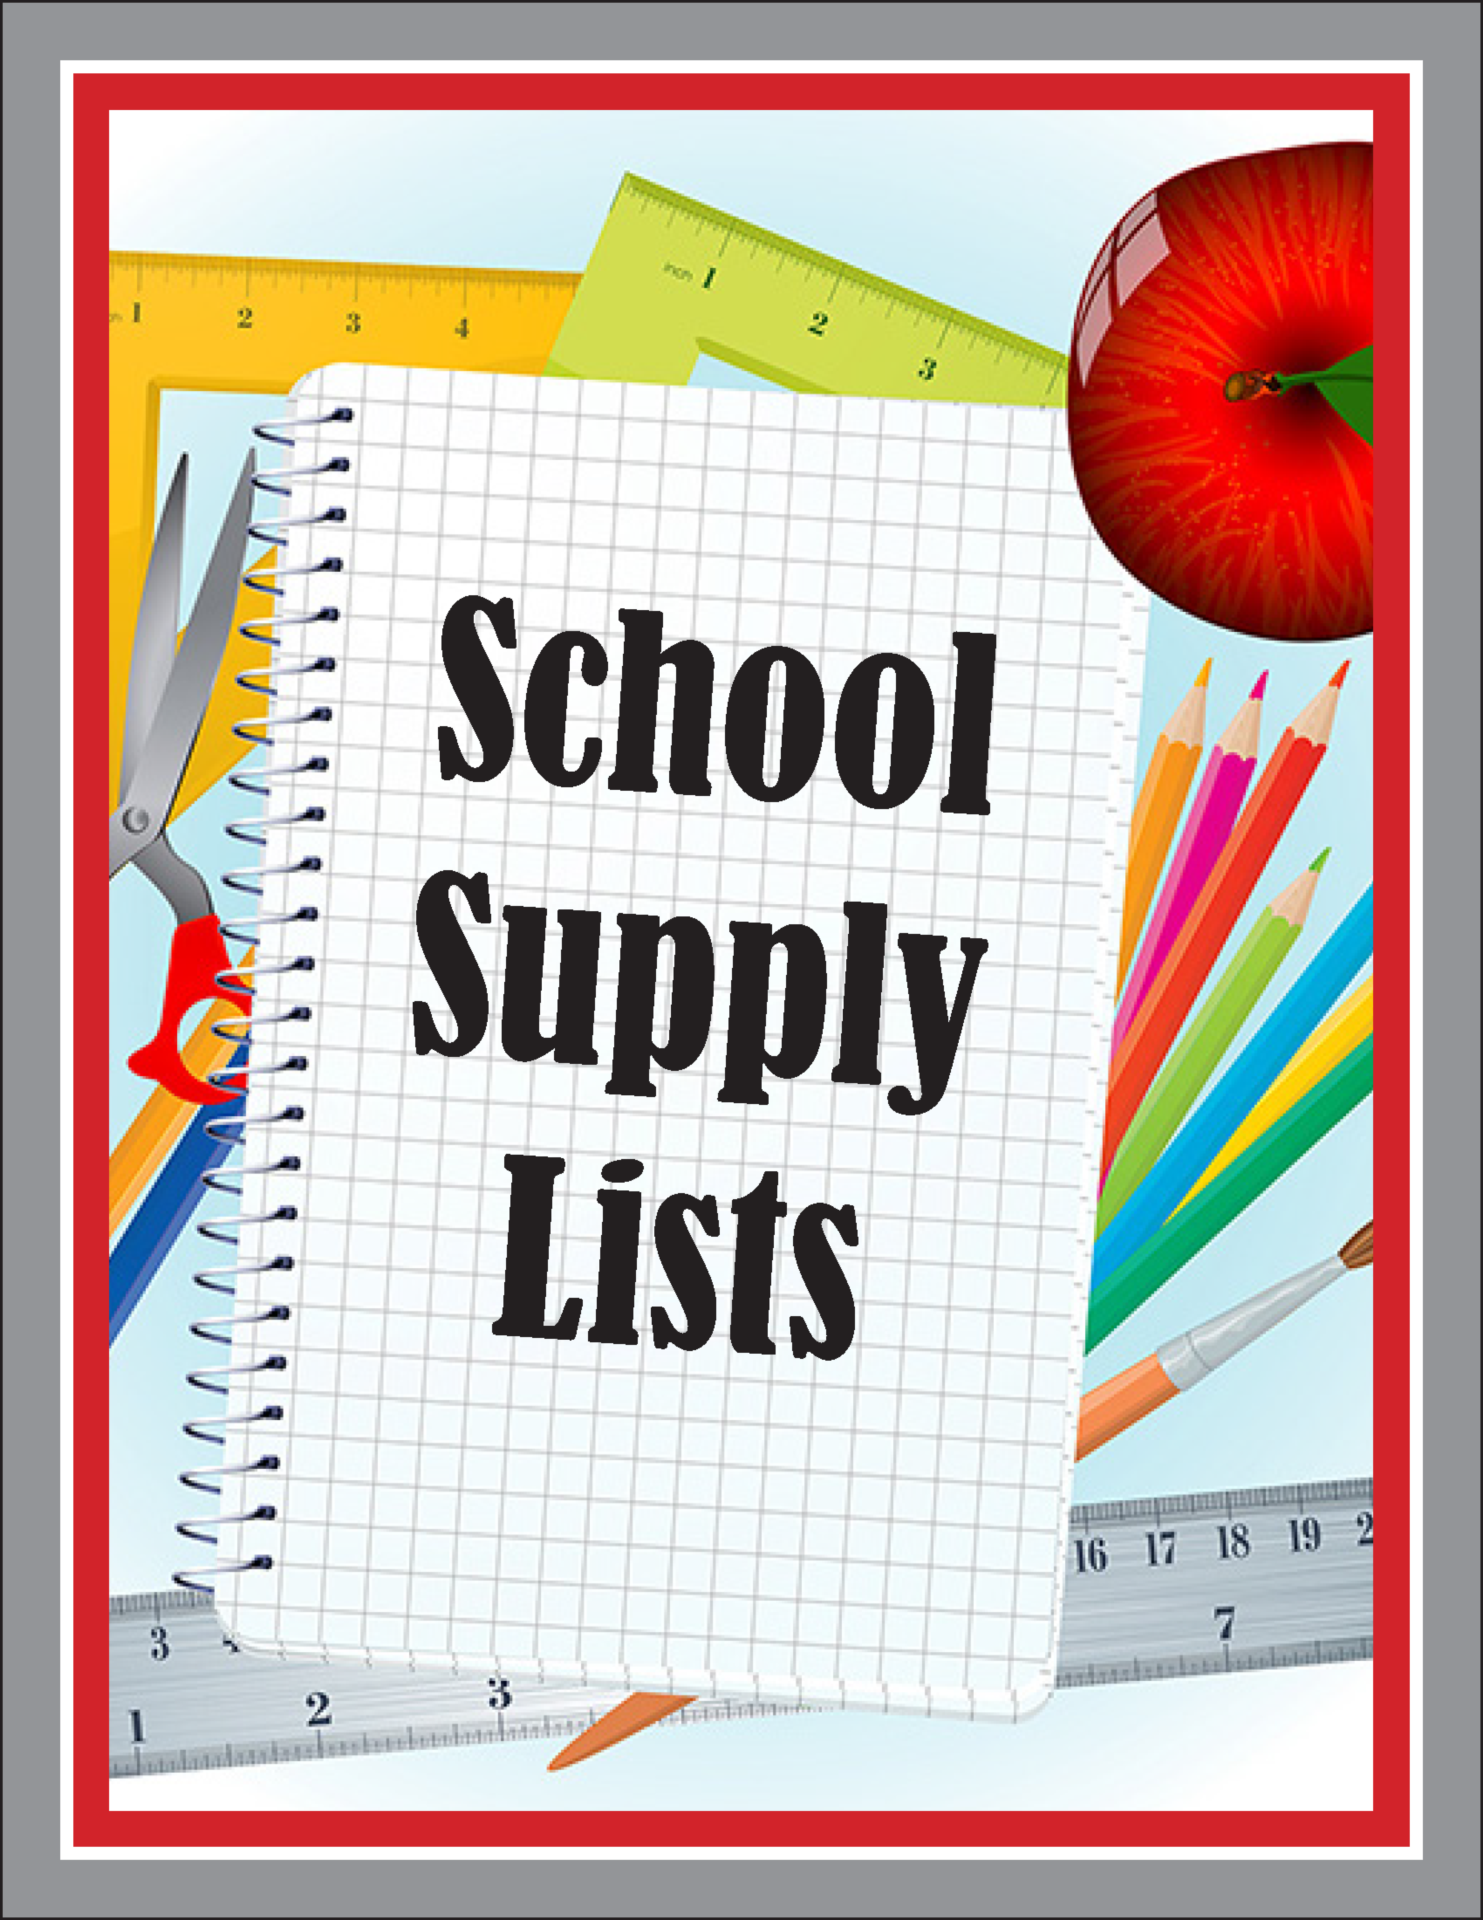 school supply lists graphic